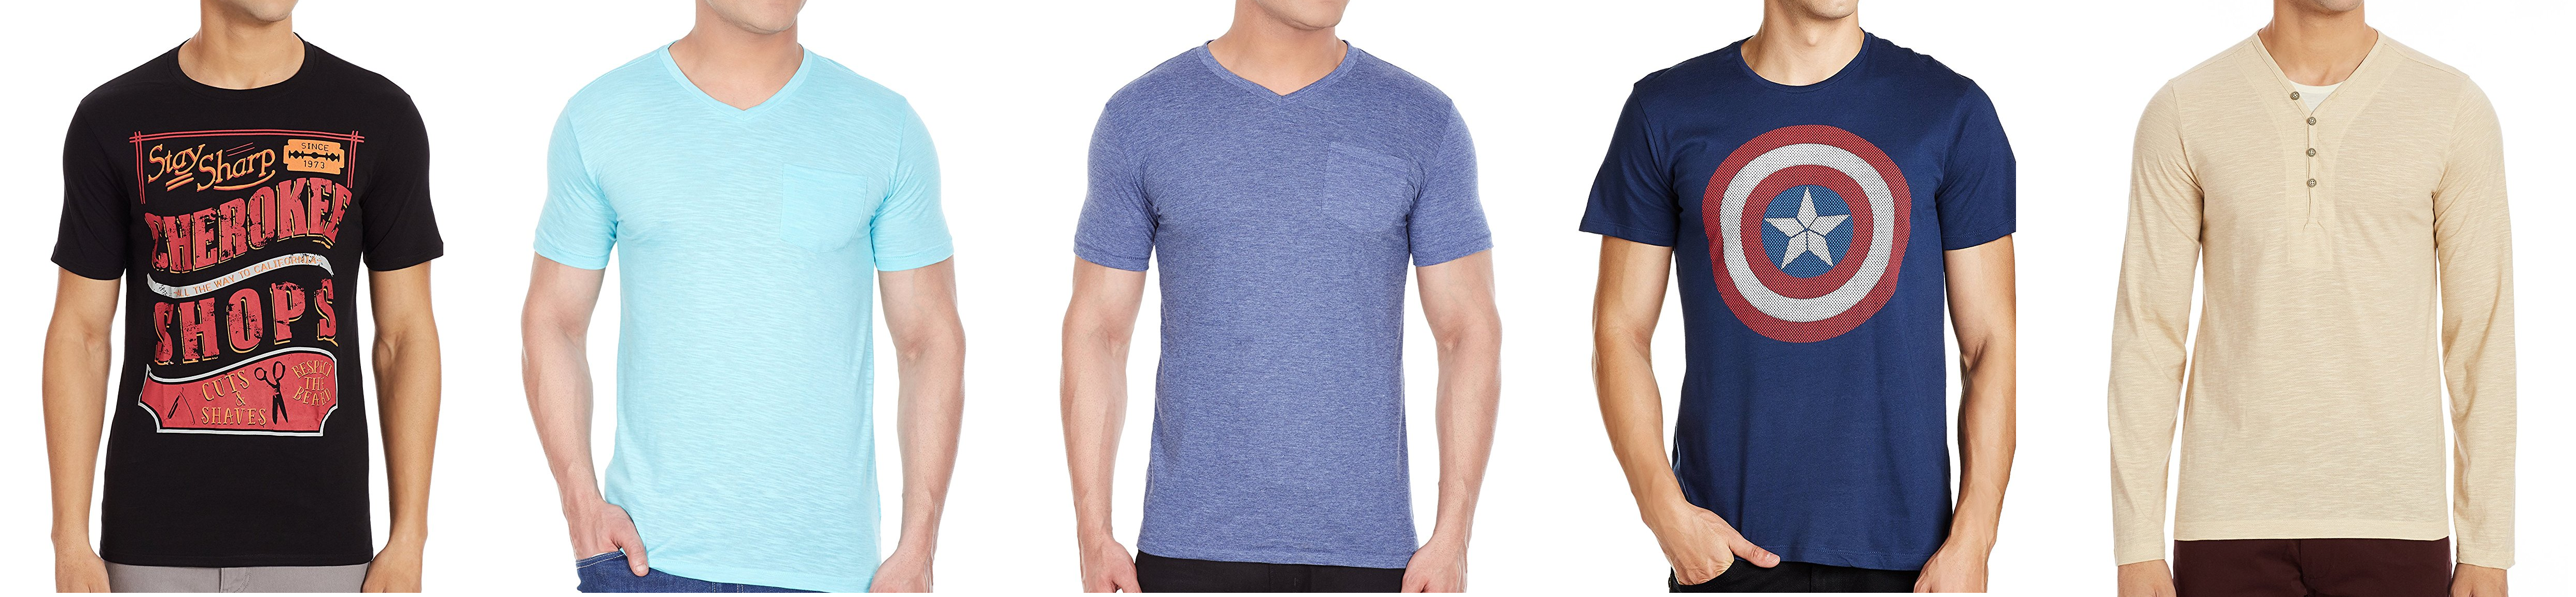 22d5739f7405 Back again) Amazon - Flat 60% off on Colt and Cherokee Men s T-Shirt